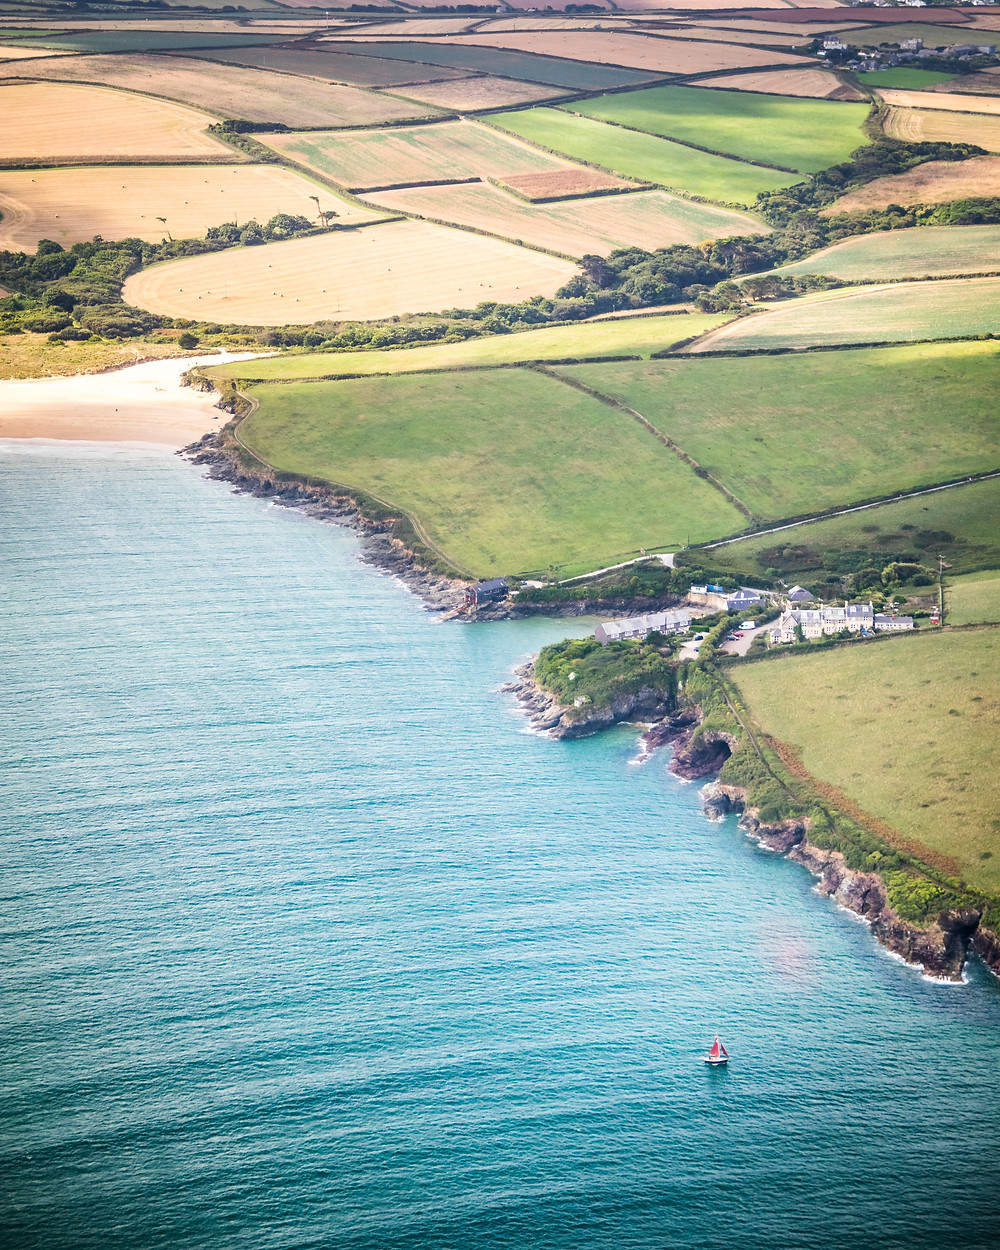 Aerial View Of Hawkers Cove and Tregirls Beach, Cornwall From The Air